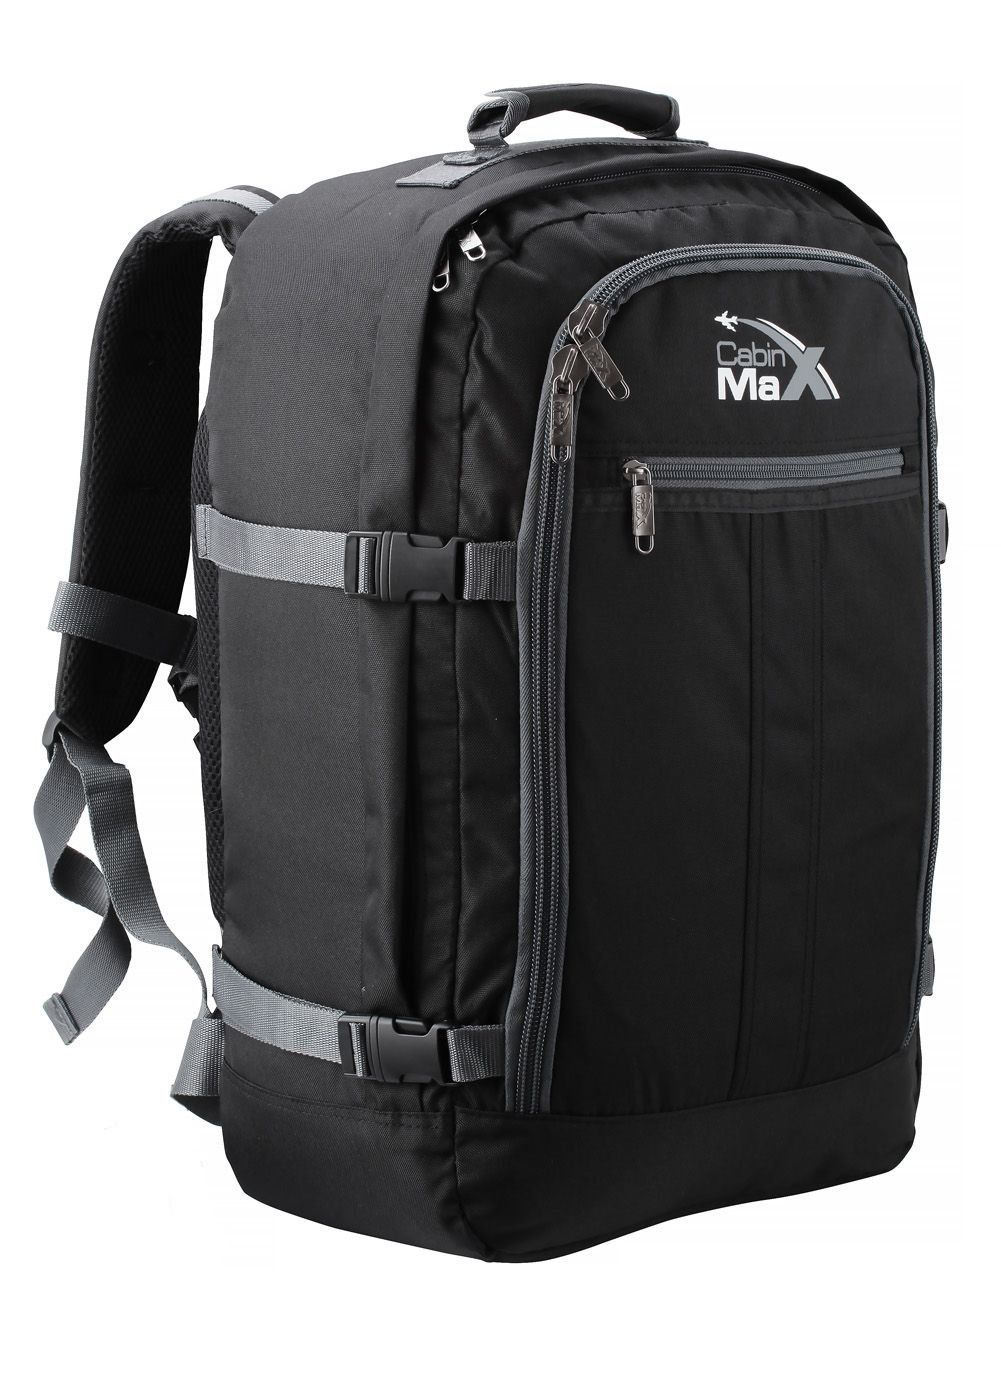 18d3ec23d9 Cabin Max Backpack Flight Approved Carry On Bag Massive 44 litre Travel  Hand Luggage 55x40x20 cm  Amazon.co.uk  Shoes   Bags